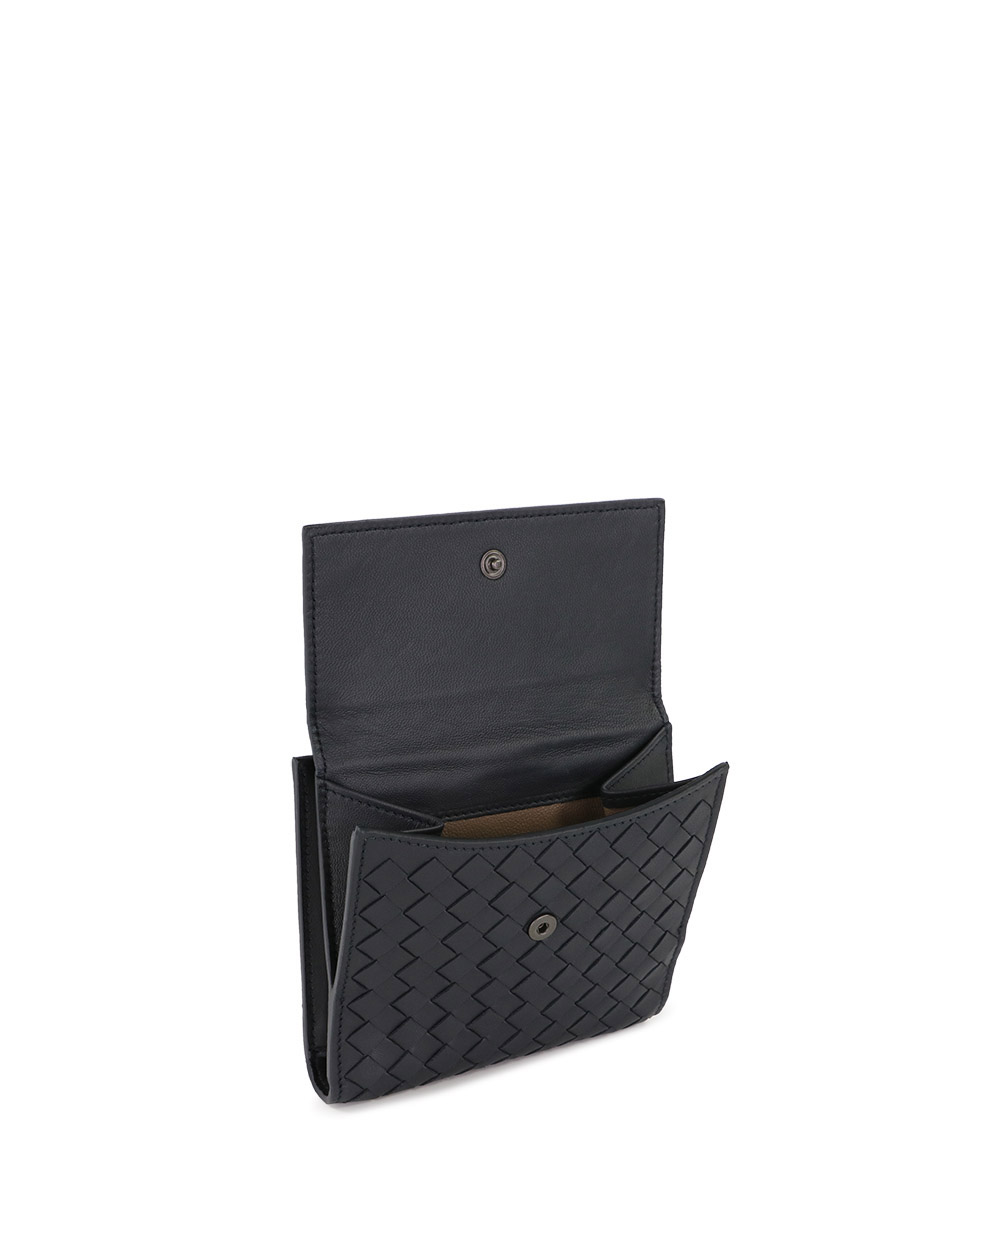 Woven Leather Short Wallet 2